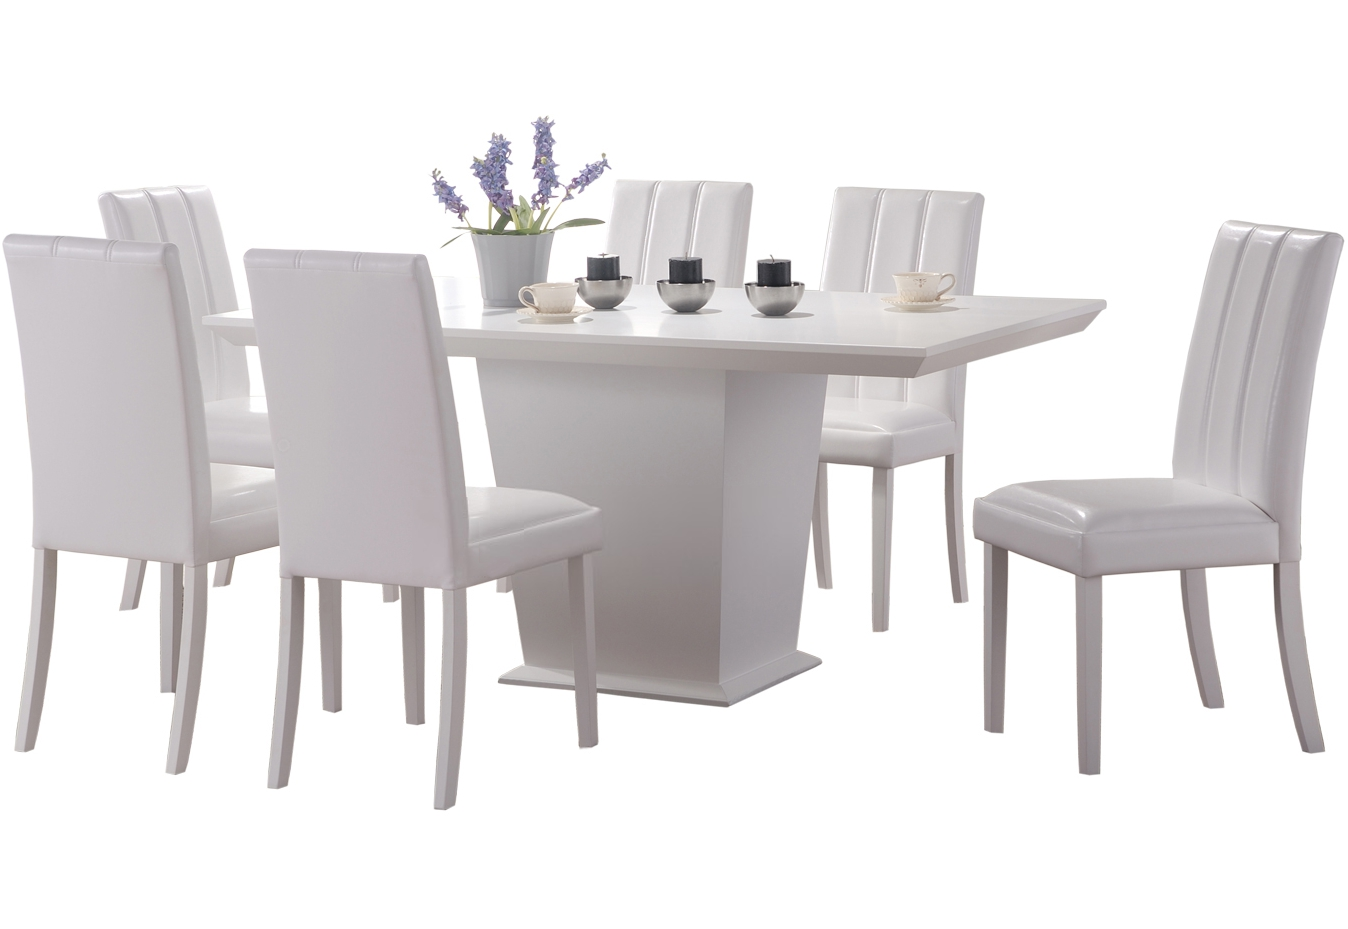 Images of white dining table and chairs chair white dining room chair round wood table and chairs 6 chairs 11412 ufsphez